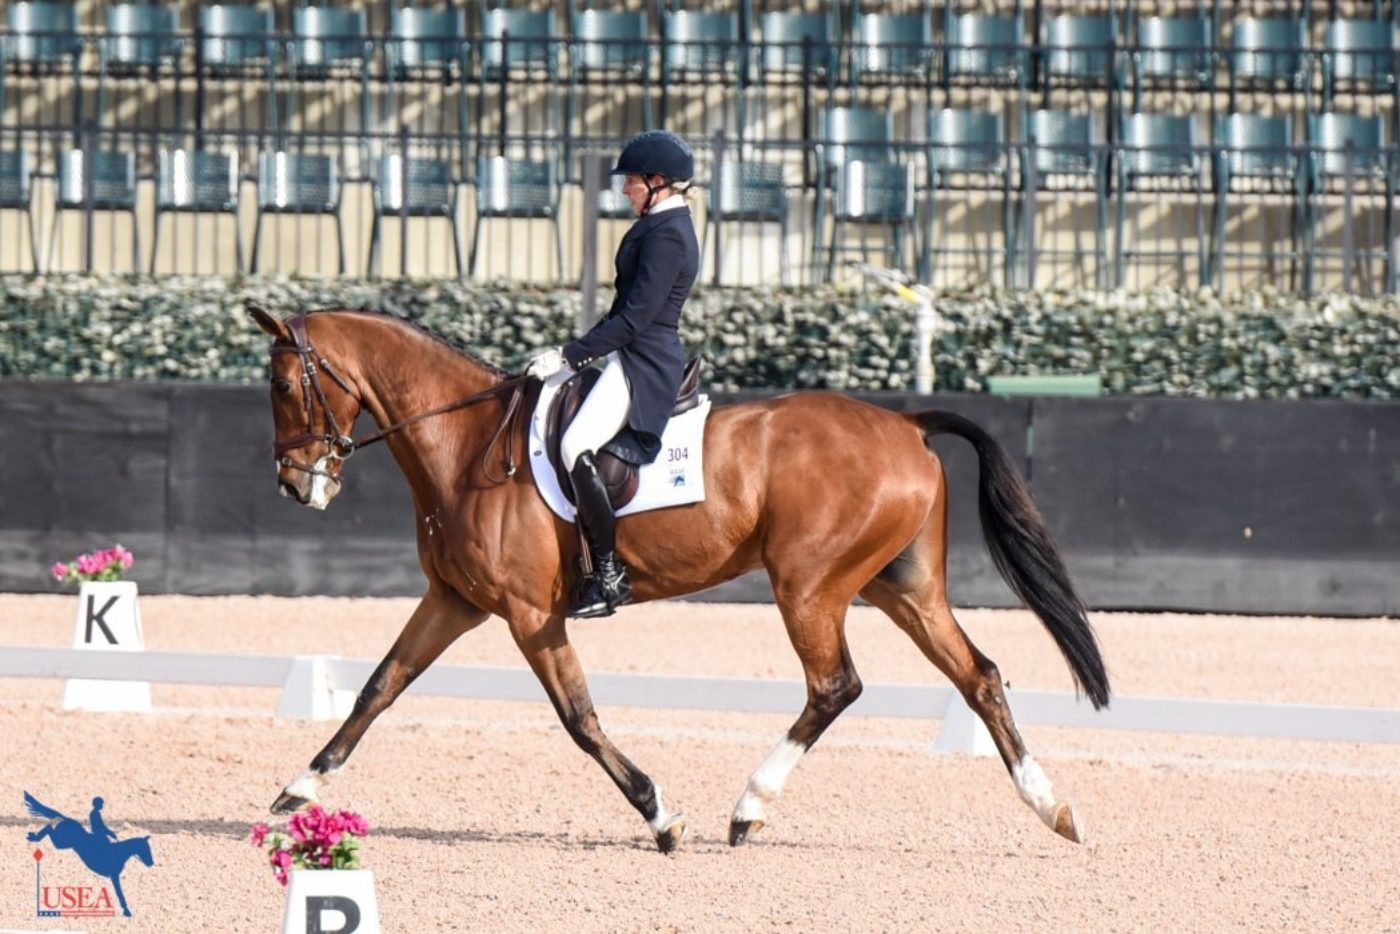 7th - Liz Halliday-Sharp and Deniro Z